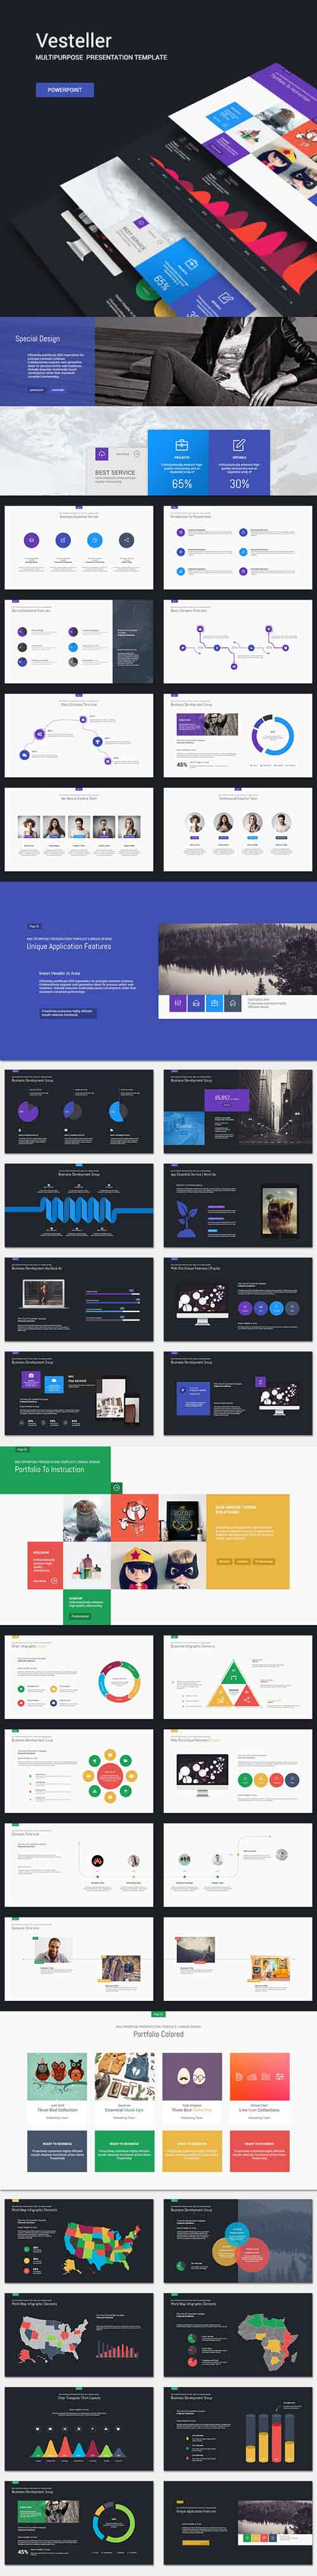 Vesteller - Business template 11431824